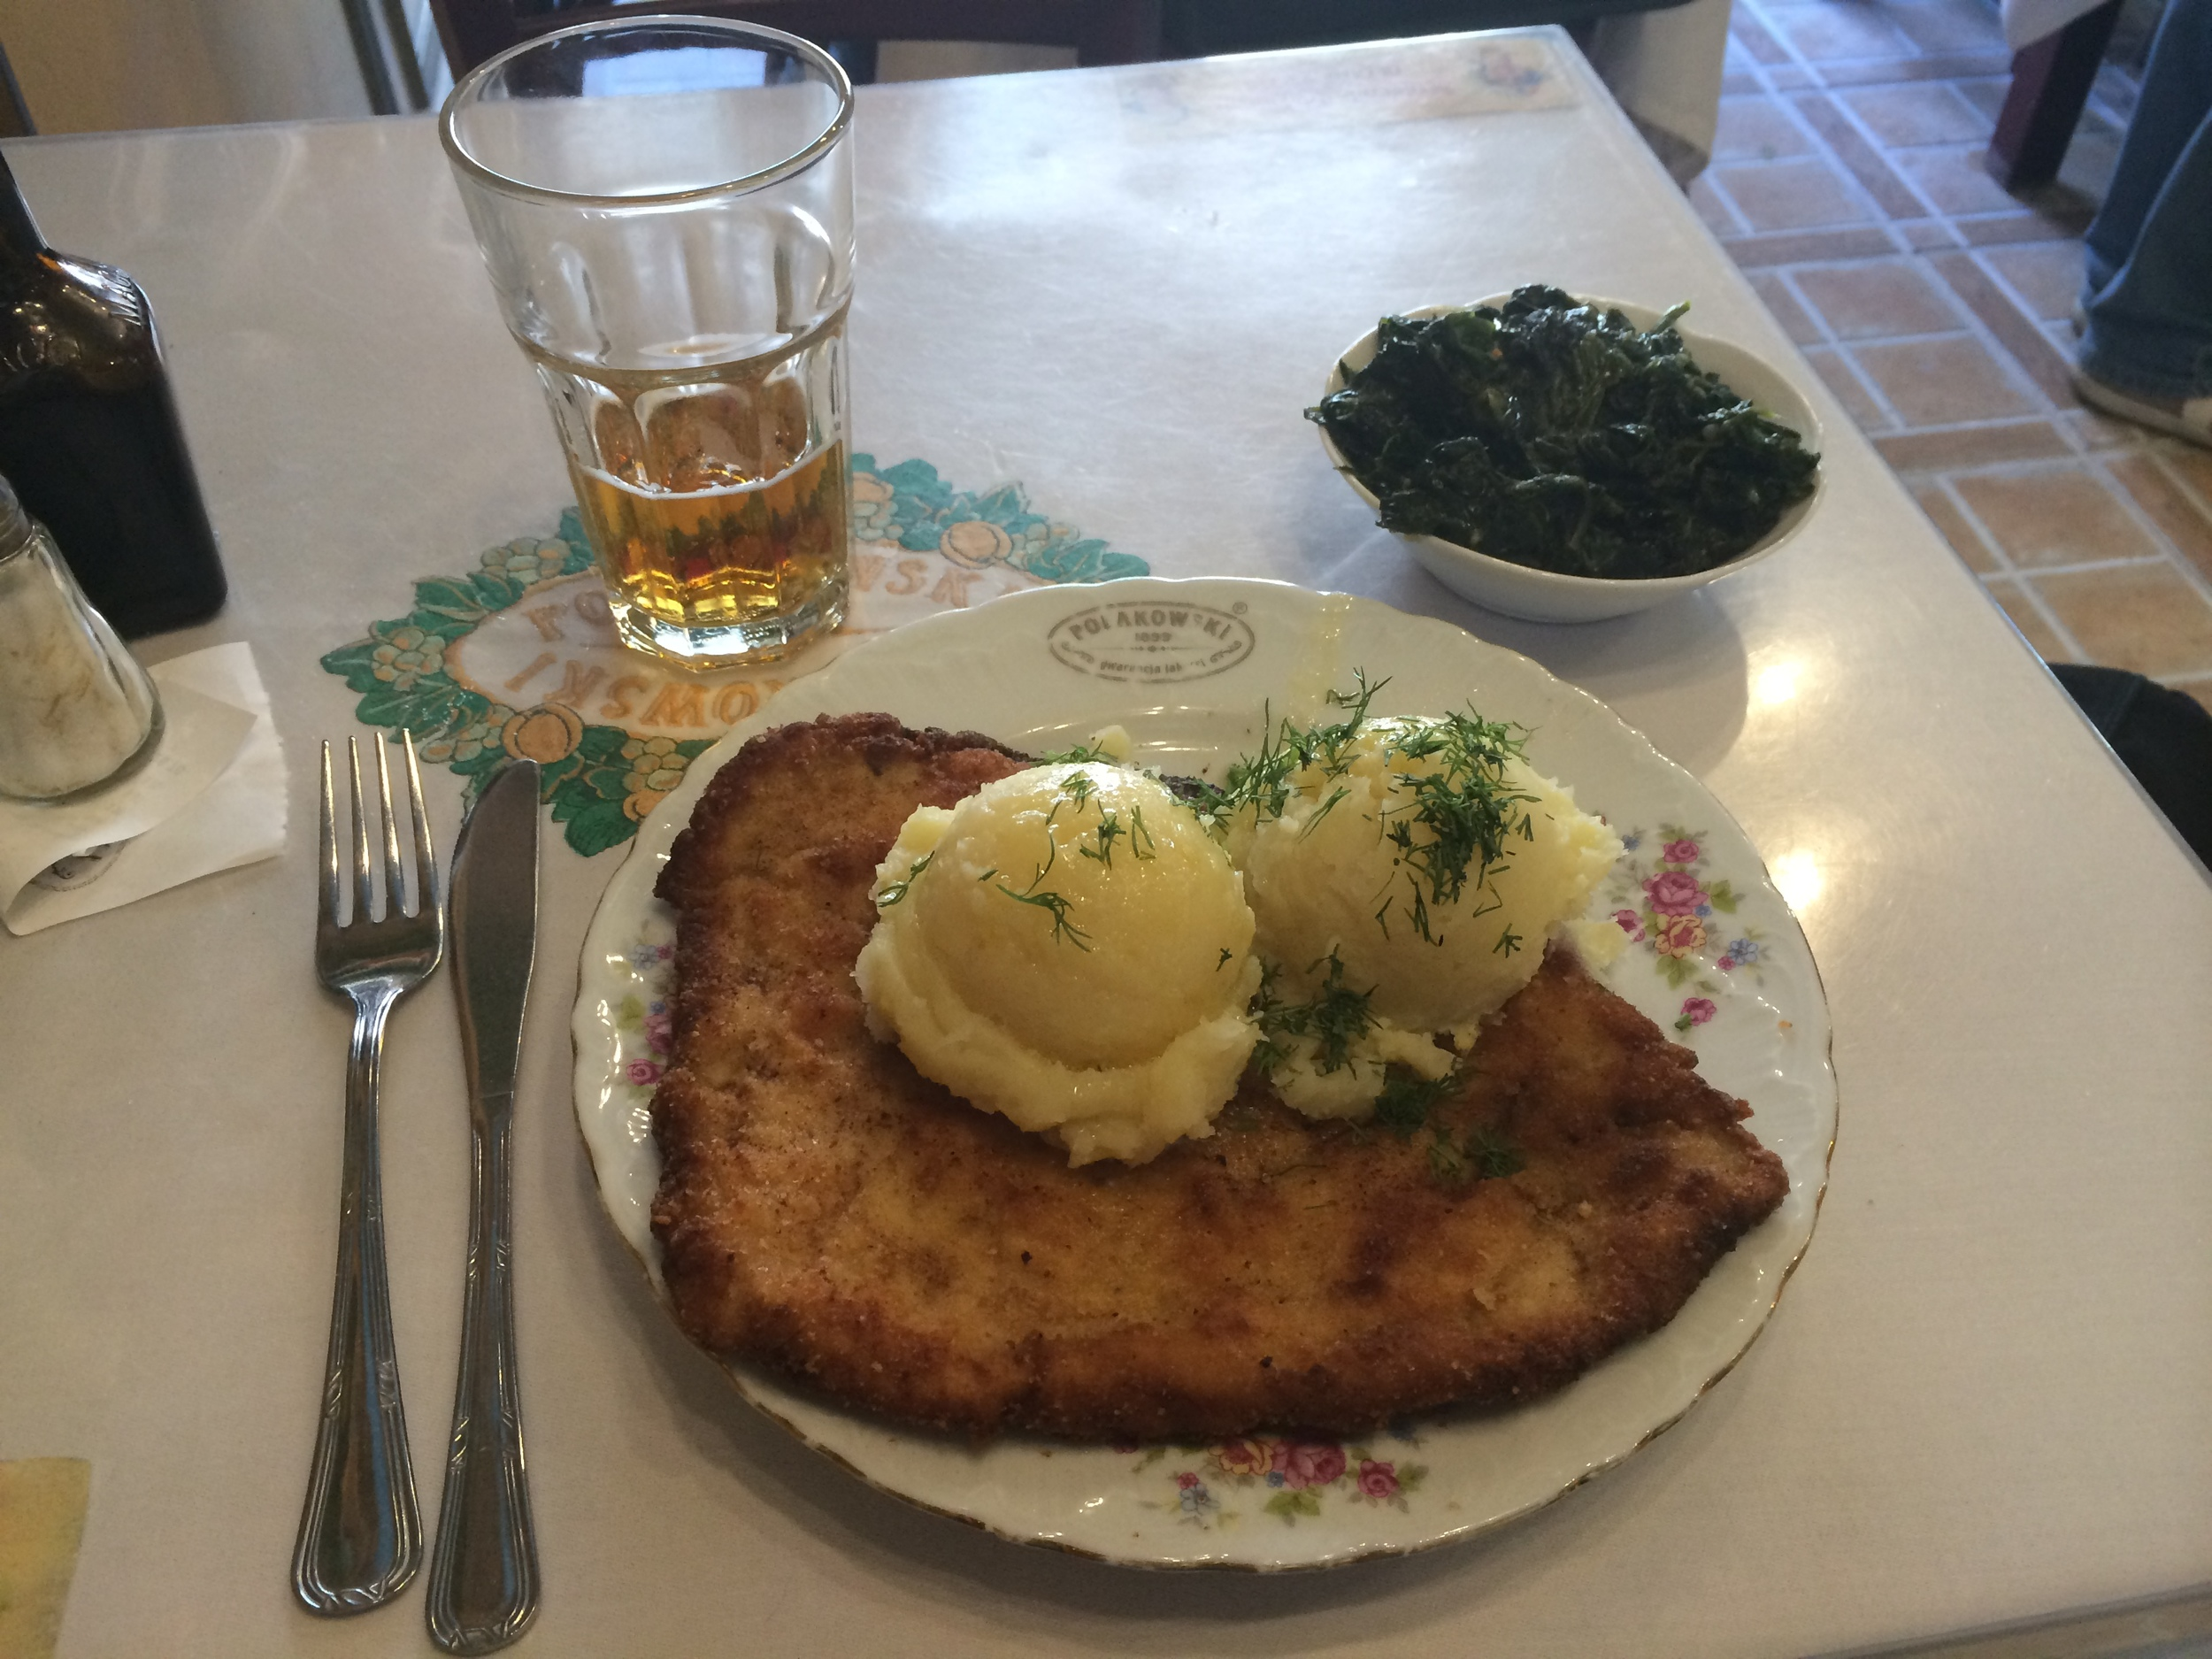 Time for some food! Can you believe this plate of happiness (called Kotlet Schabowy), vegetables, beer, and Zurek (not pictured) cost less than $6!